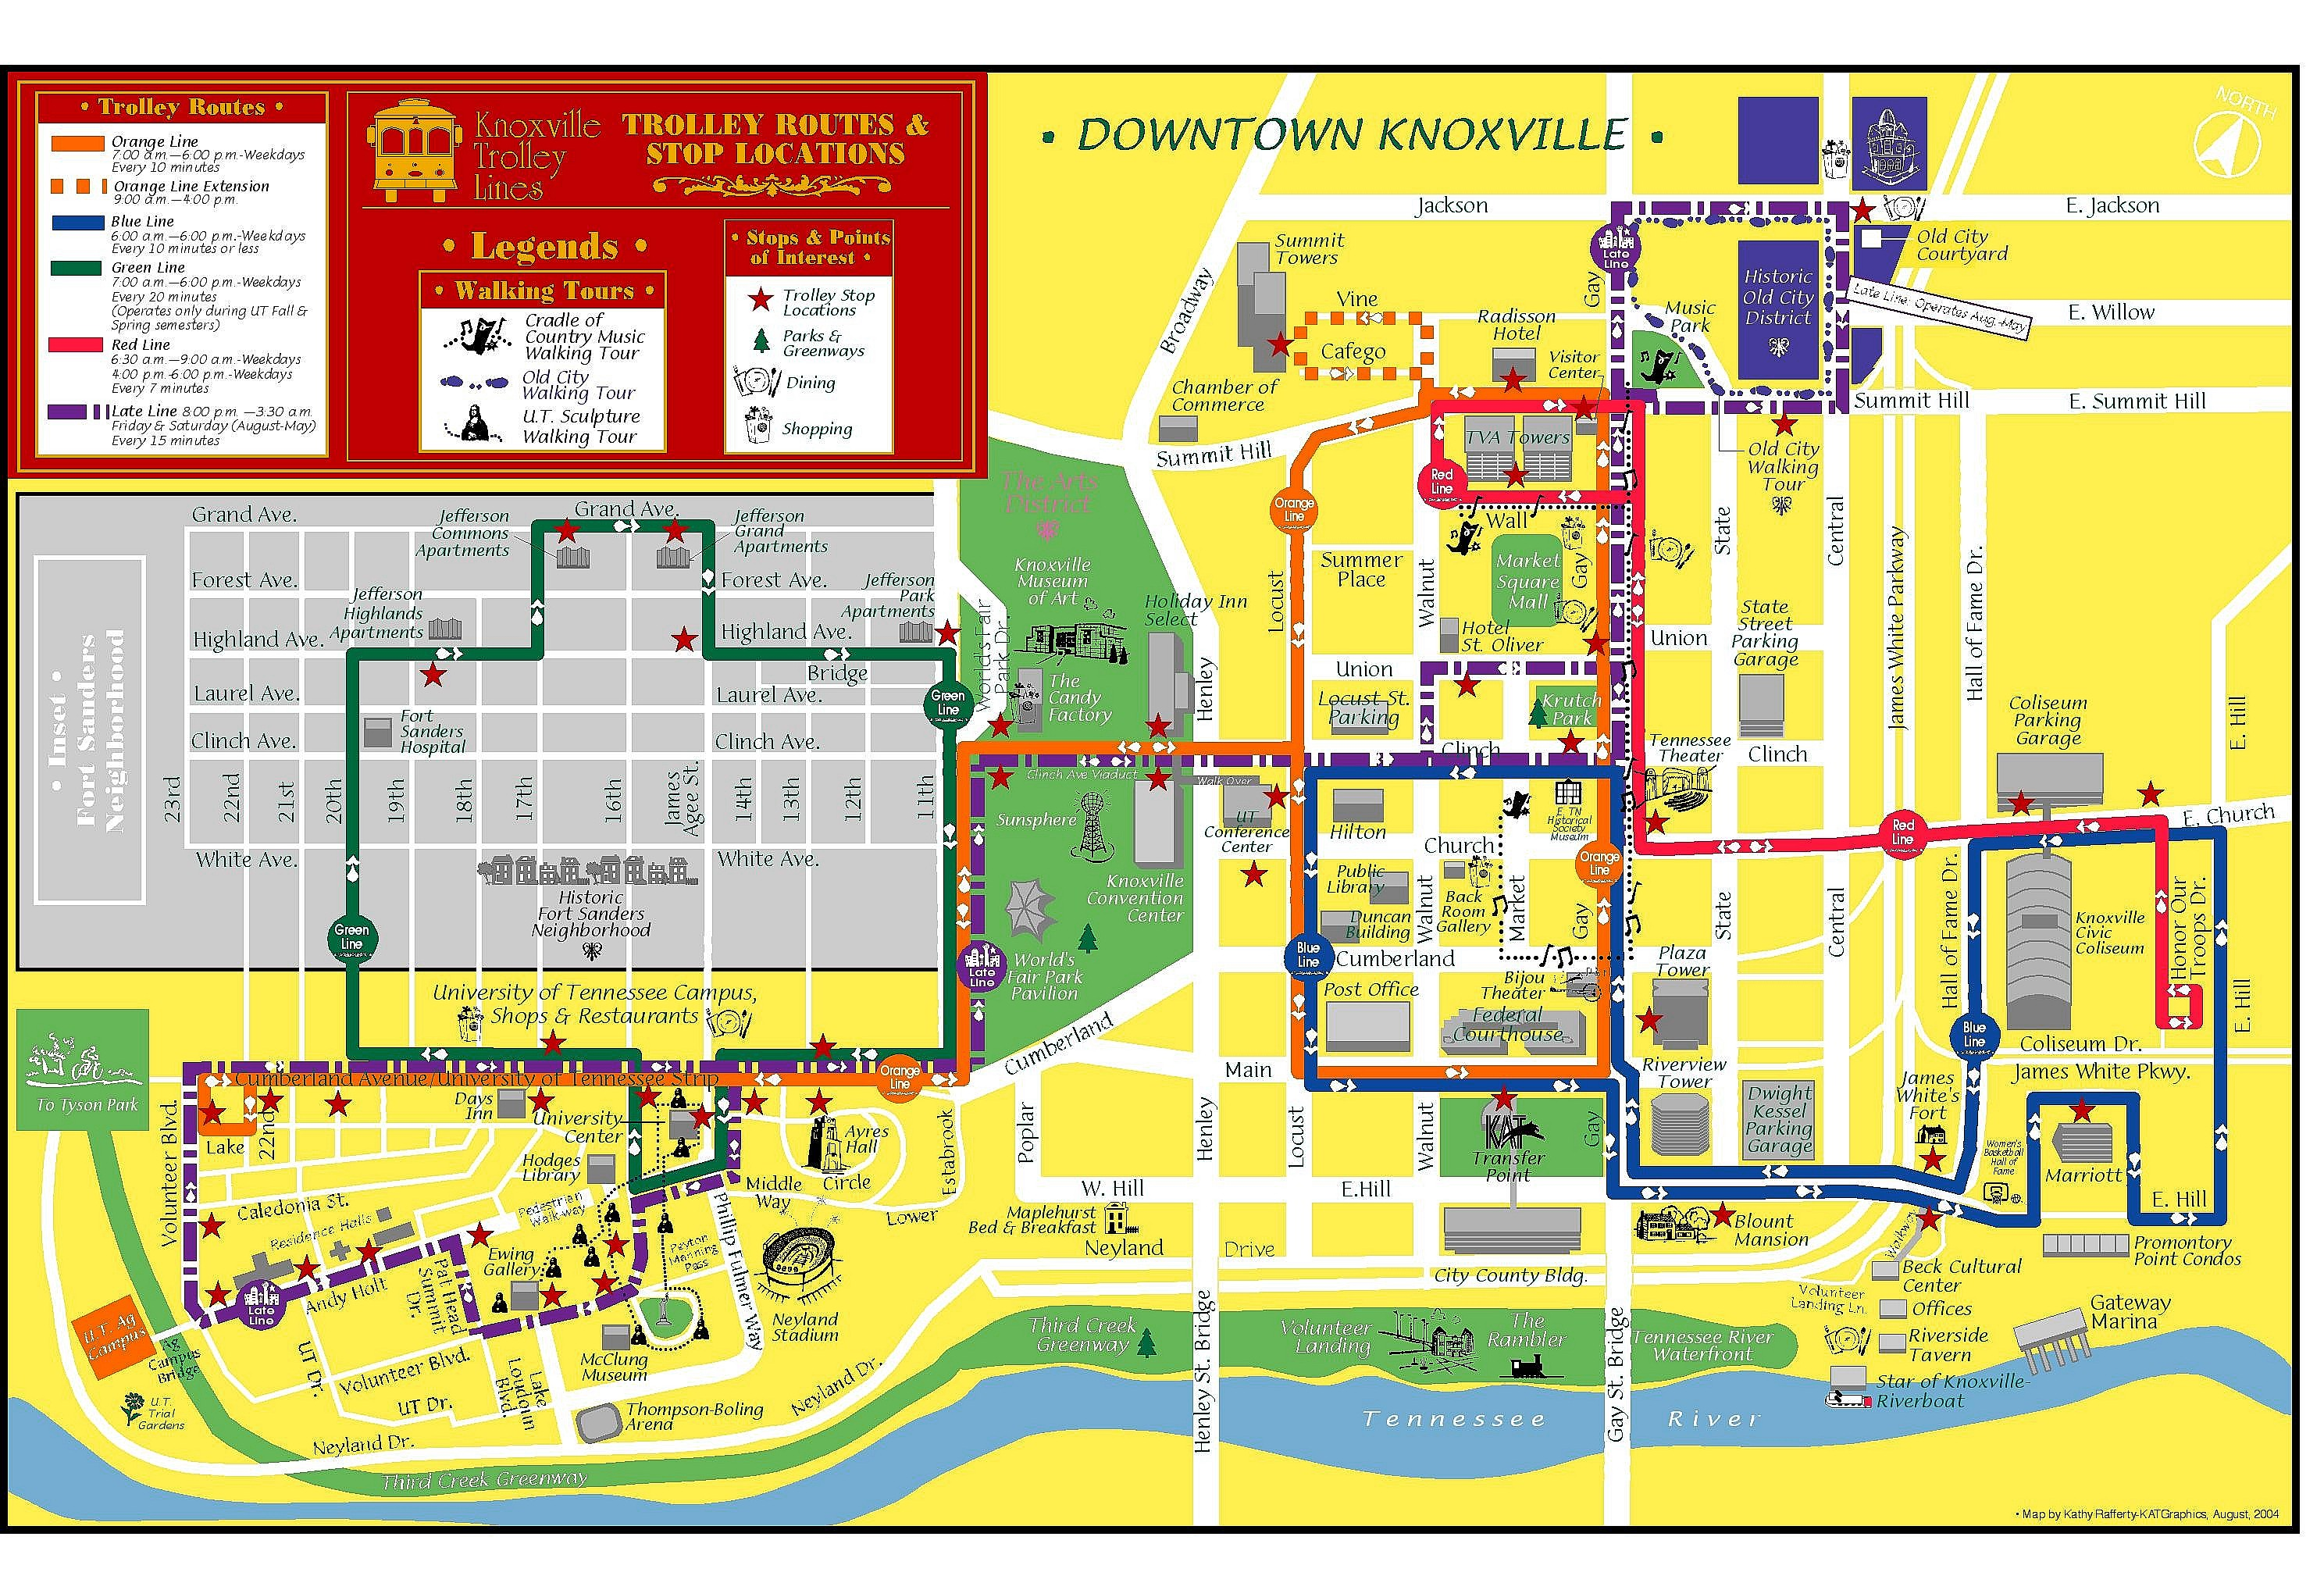 Nashville Tennessee Tourist Attractions – Tourist Attractions Map In Nashville